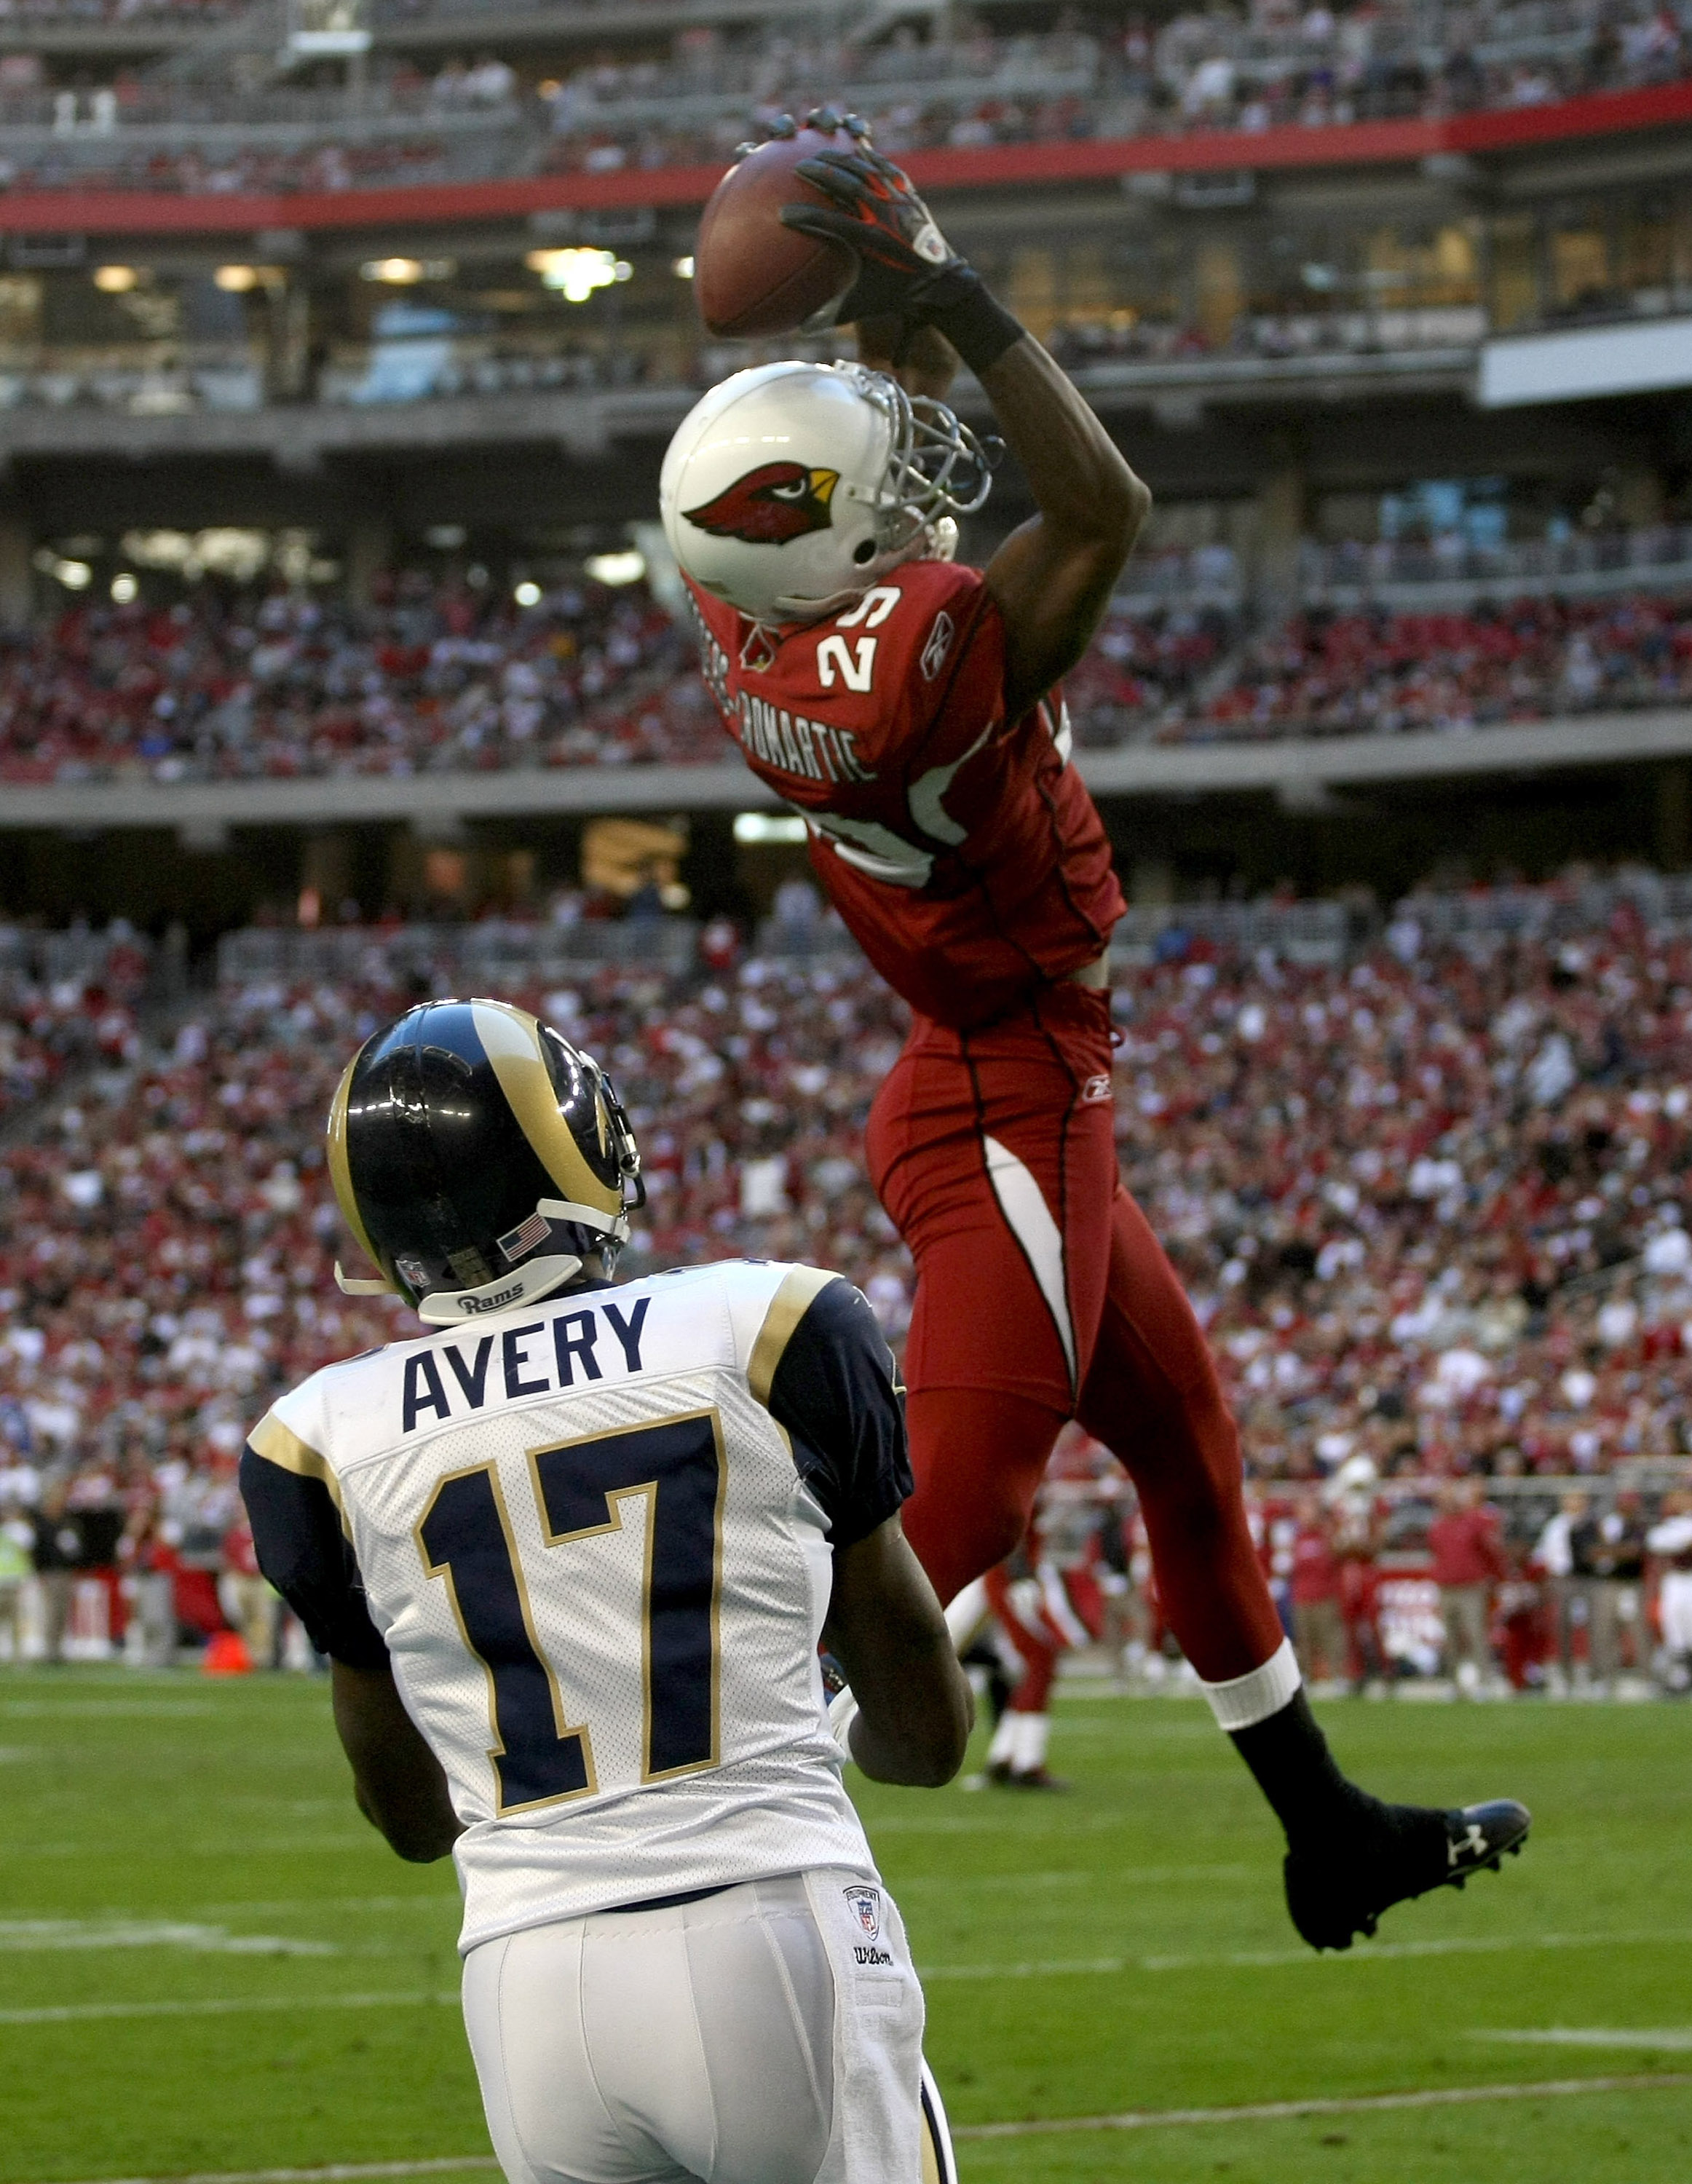 GLENDALE, AZ - DECEMBER 27:  Cornerback Dominique Rodgers-Cromartie #29 of the Arizona Cardinals jumps to intercept a pass over wide receiver Donnie Avery #19 of the St. Louis Rams in the fourth quarter on December 27, 2009 at University of Phoenix Stadiu